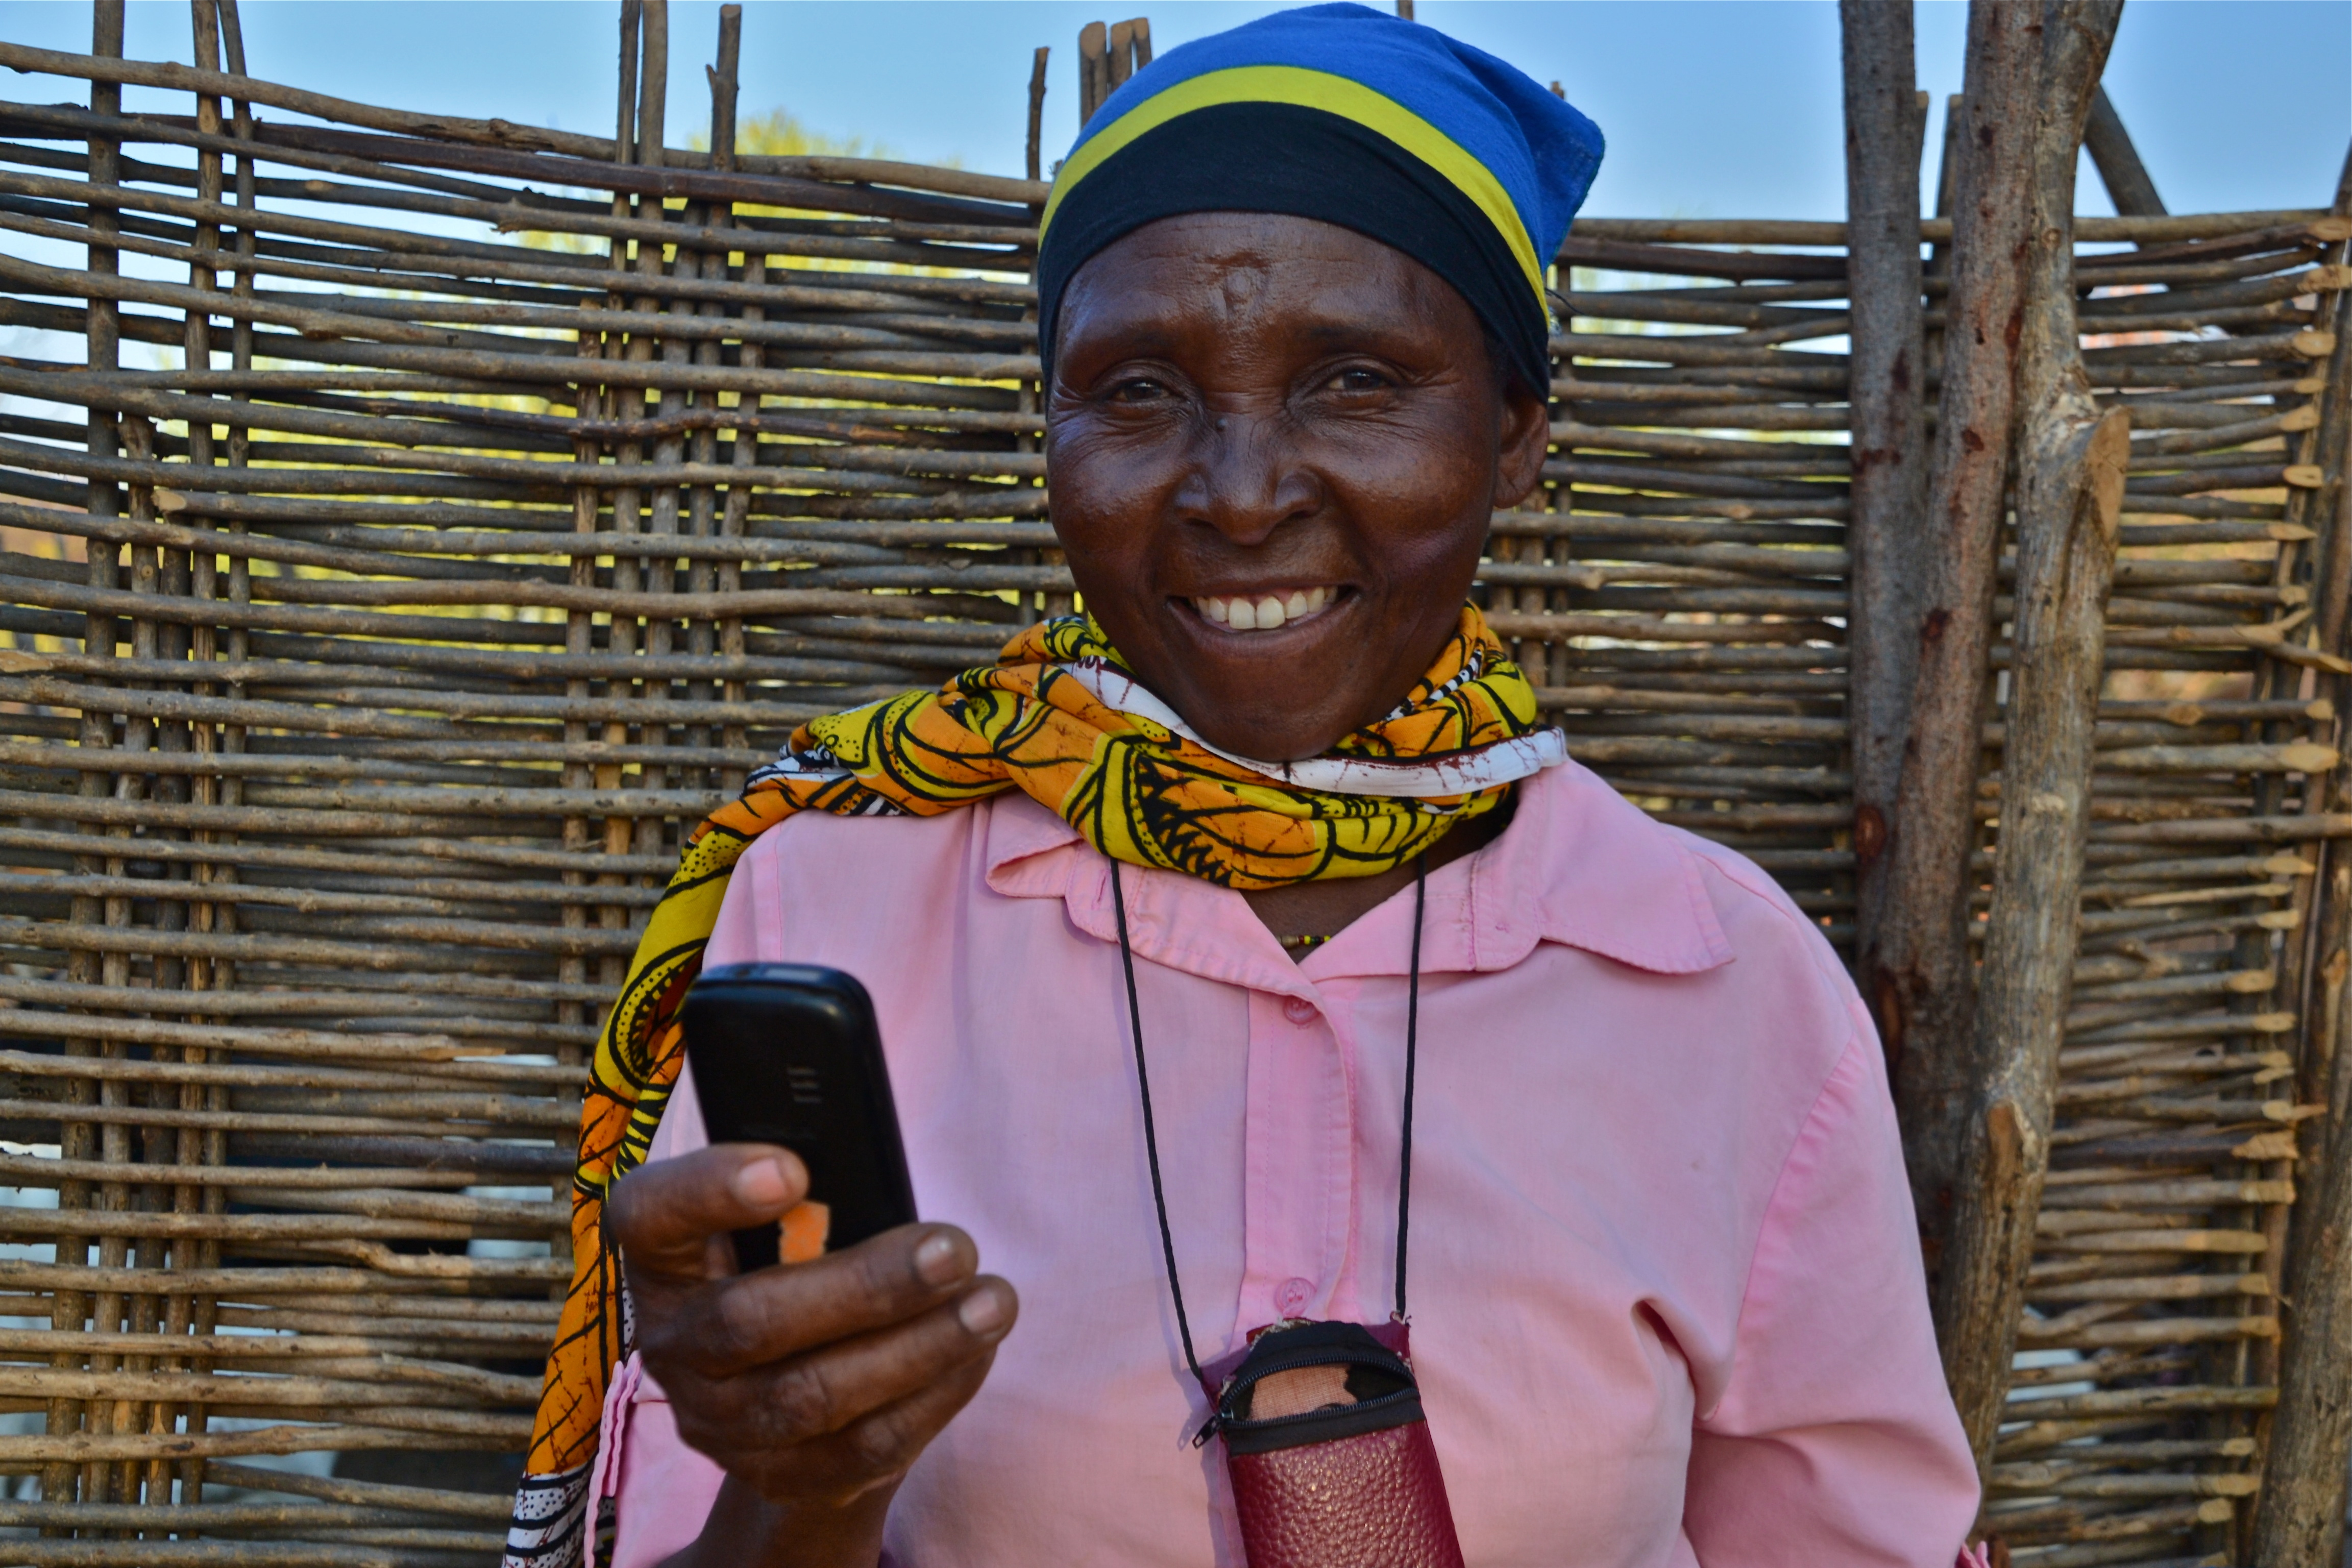 The important role of technology in rural farming